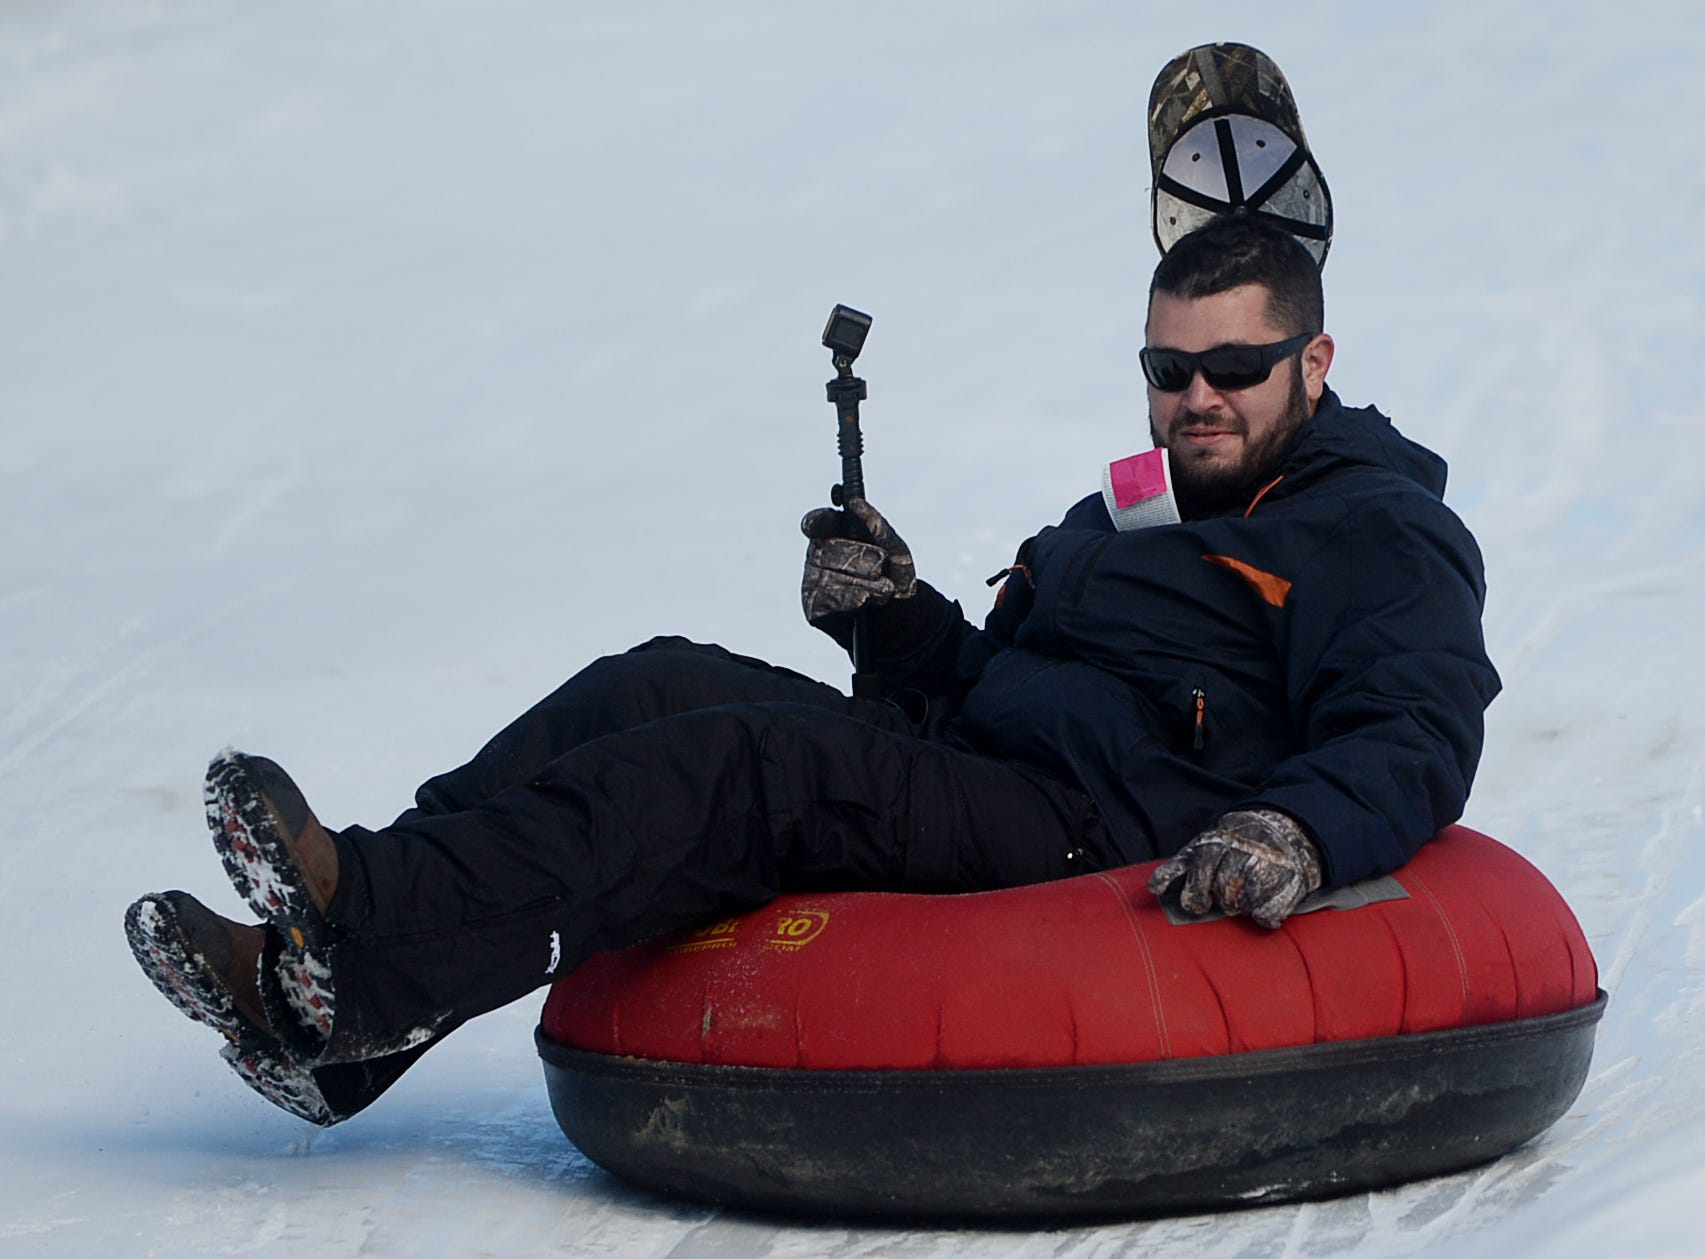 Kyle Hebert loses his hat as he slides down the hill at the Zip N Slip Snow Tubing Park in Mars Hill Dec. 22, 2018.